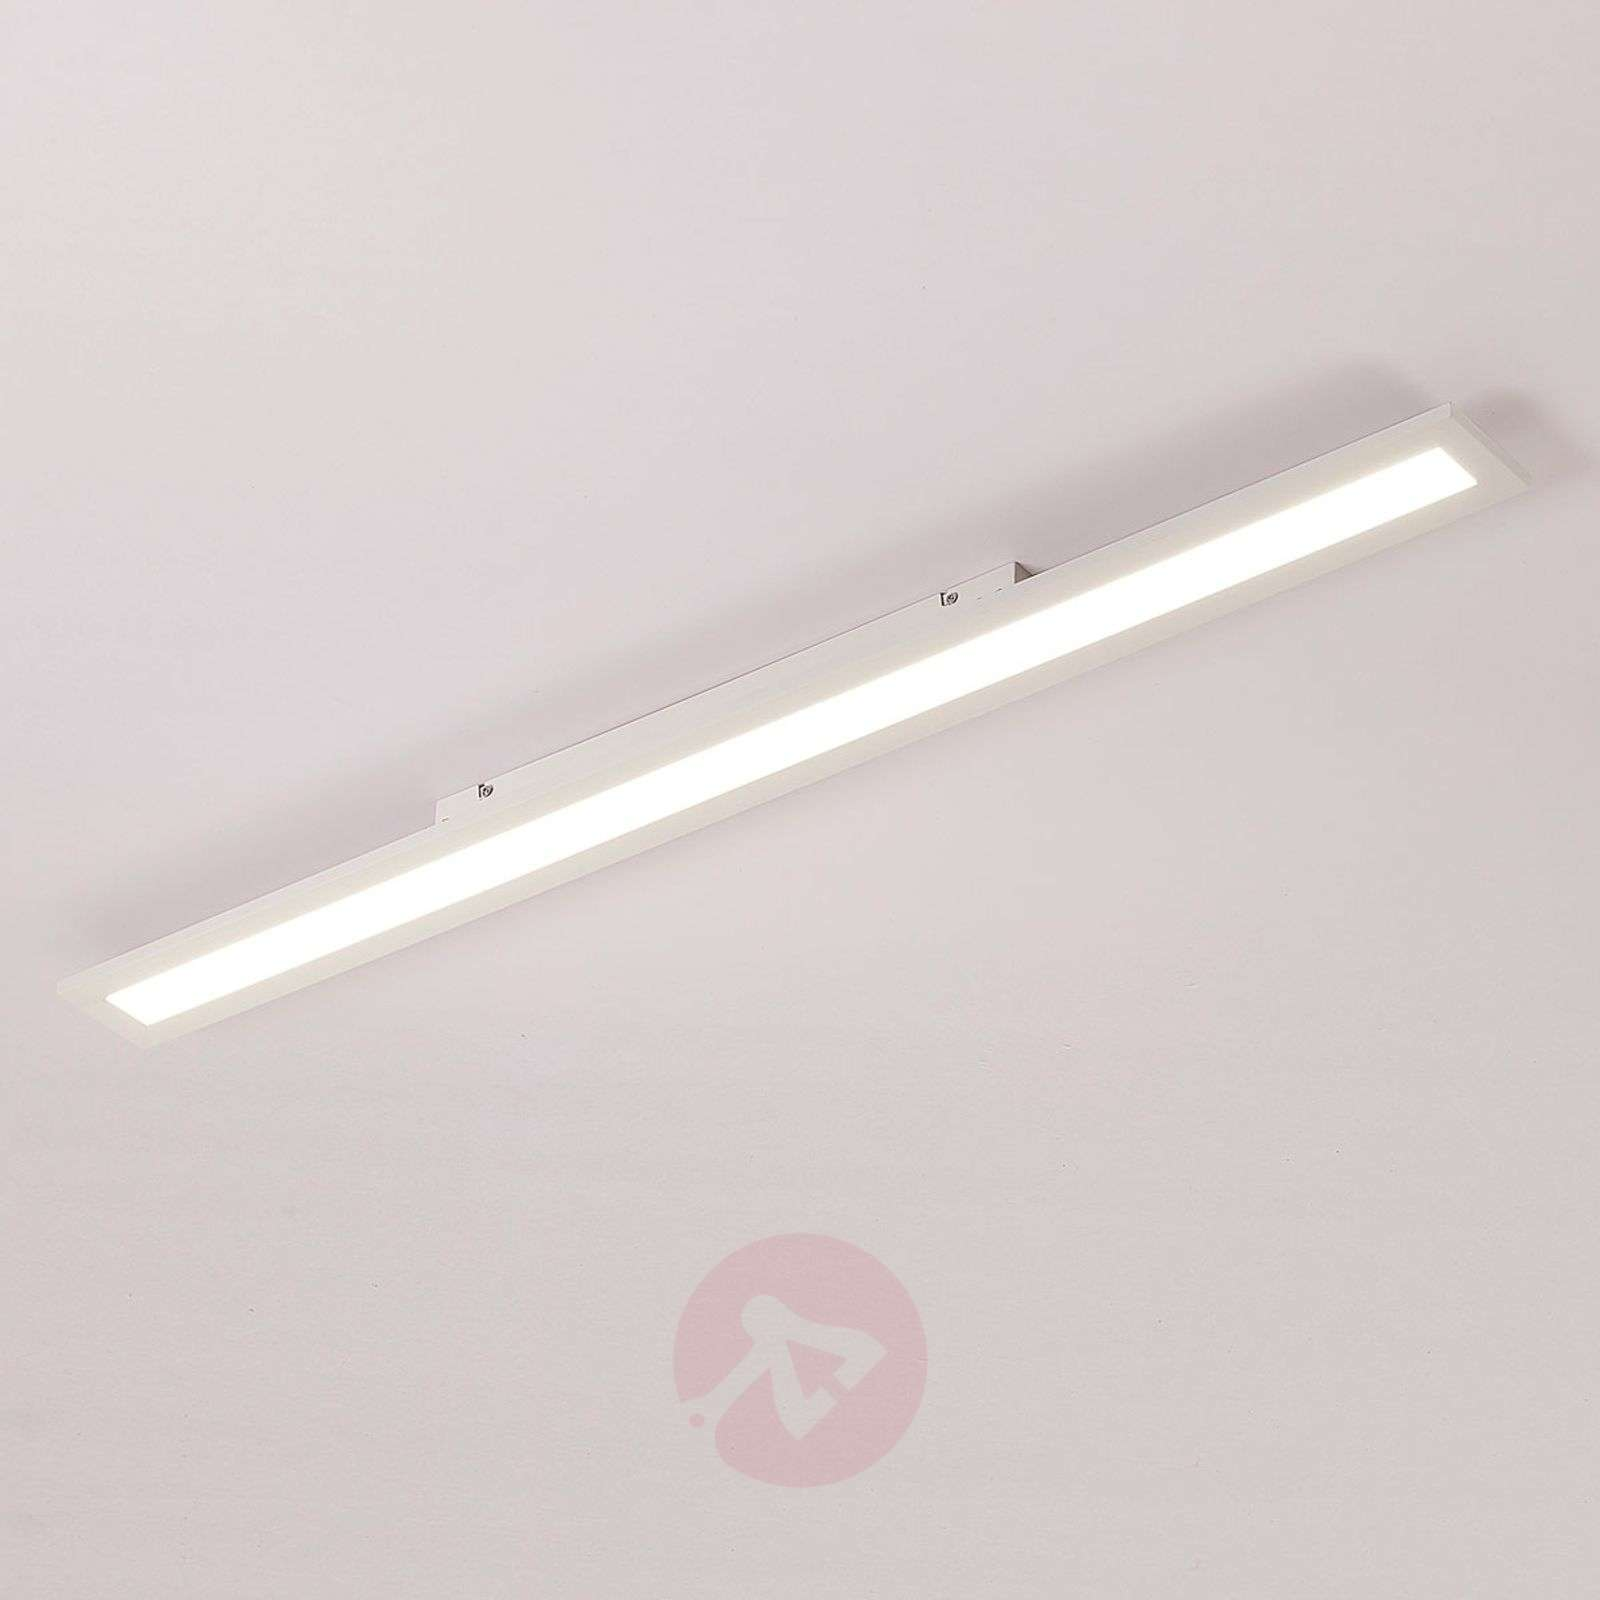 Panel LED Arya con mando a distancia, atenuable-9621582-03